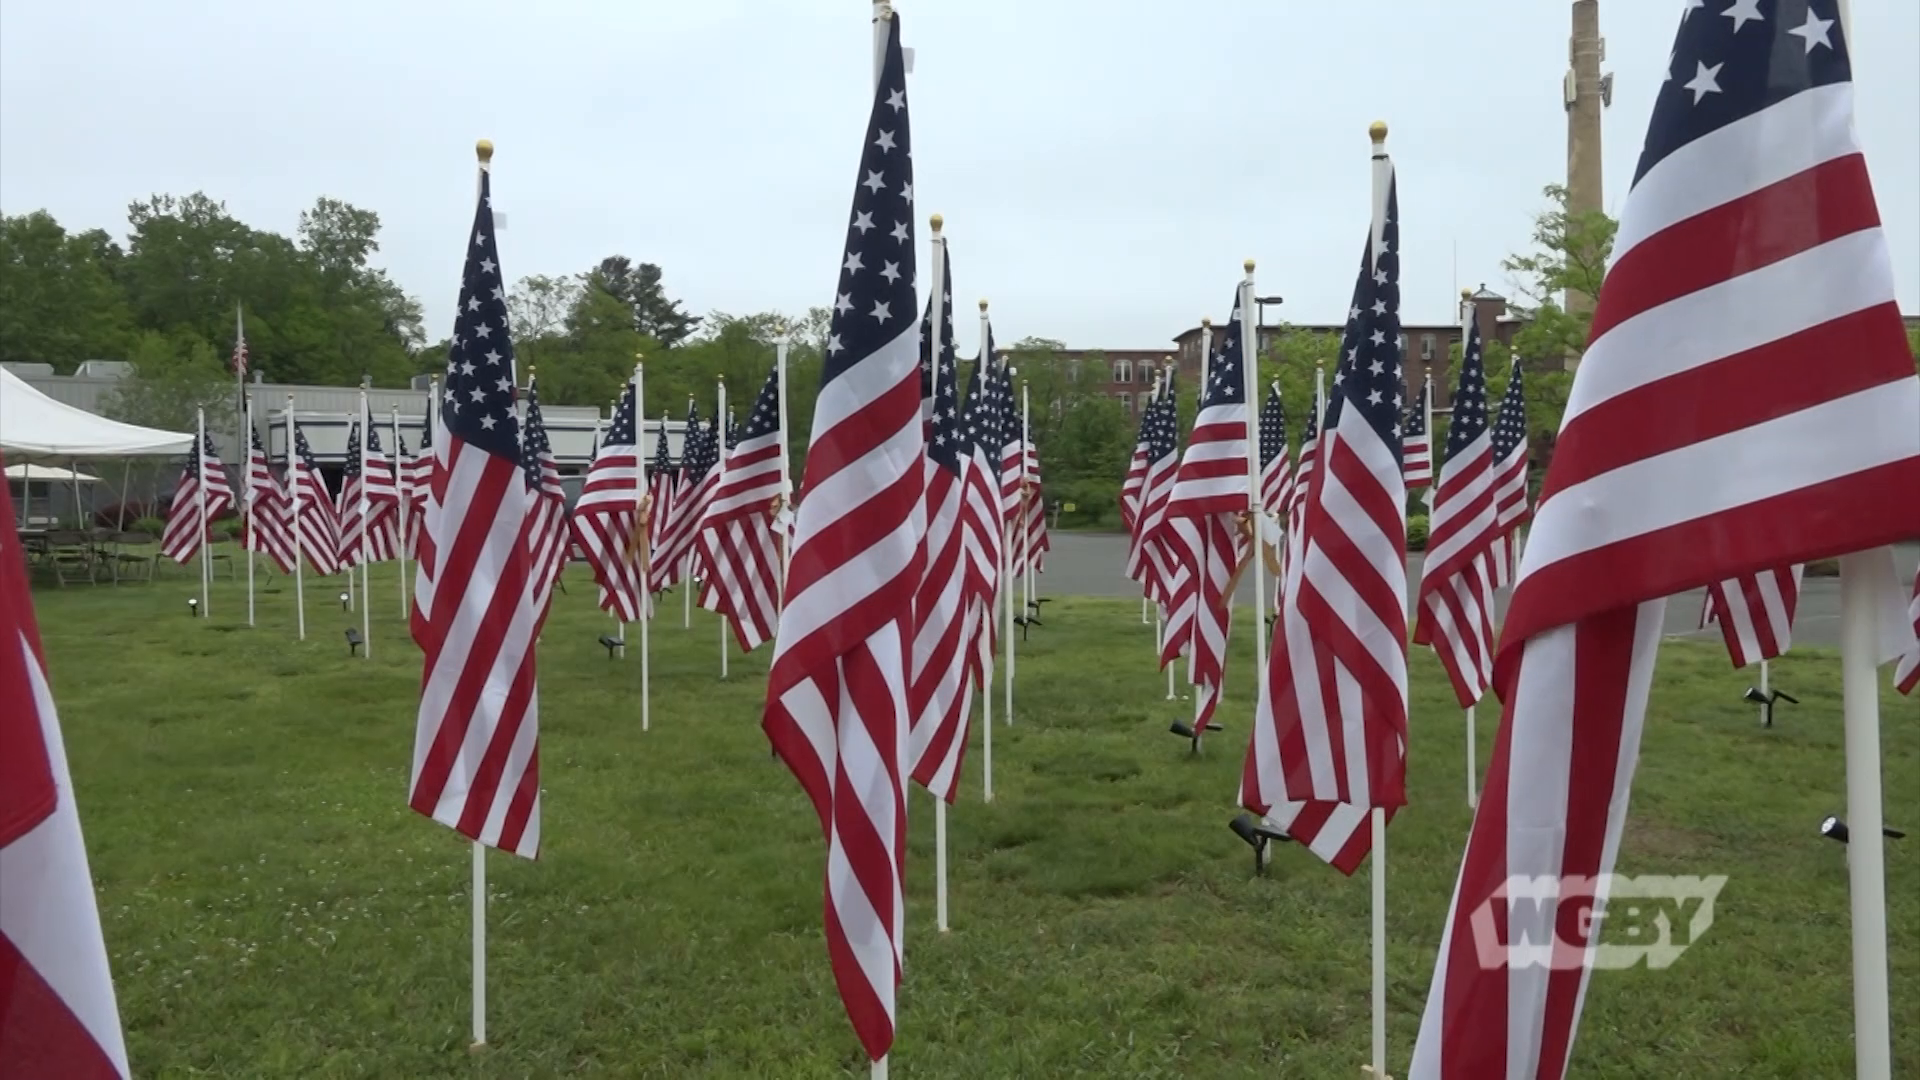 Visit the Field of Honor, a flag installation in honor of those who've fought to protect the nation sponsored by the Northampton Lodge of Elks.